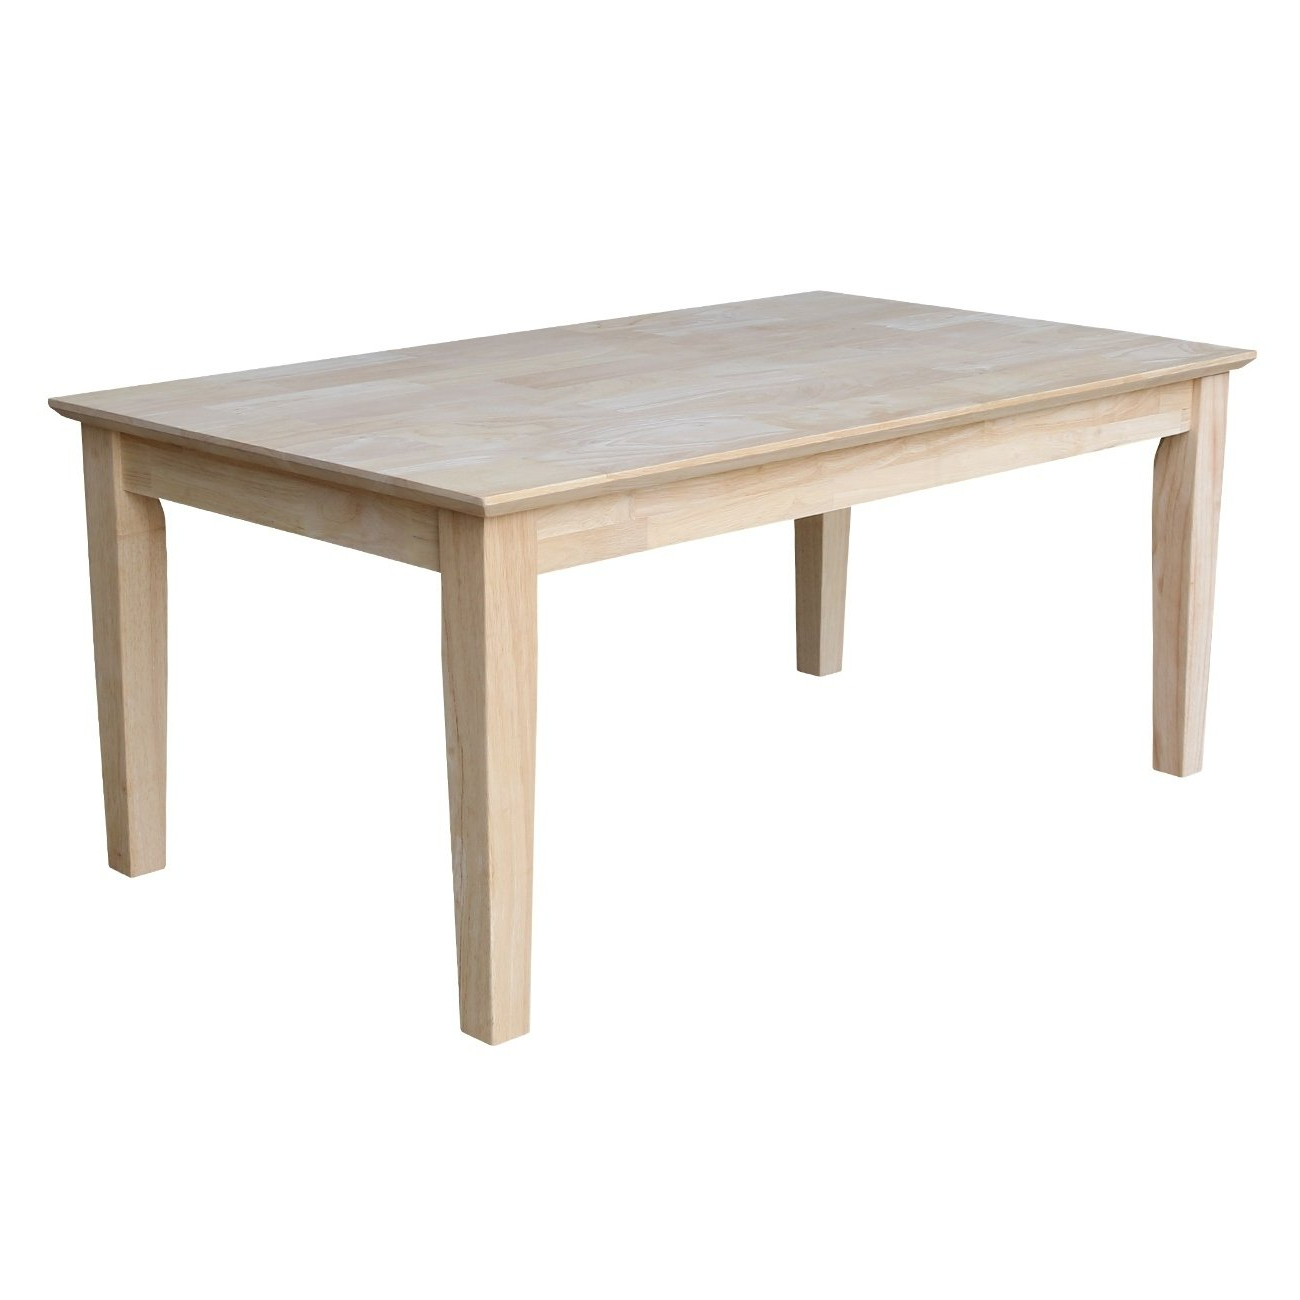 Widely Used Swell Round Coffee Tables With Shop Shaker Unfinished Solid Parawood Tall Coffee Table – Free (View 15 of 20)